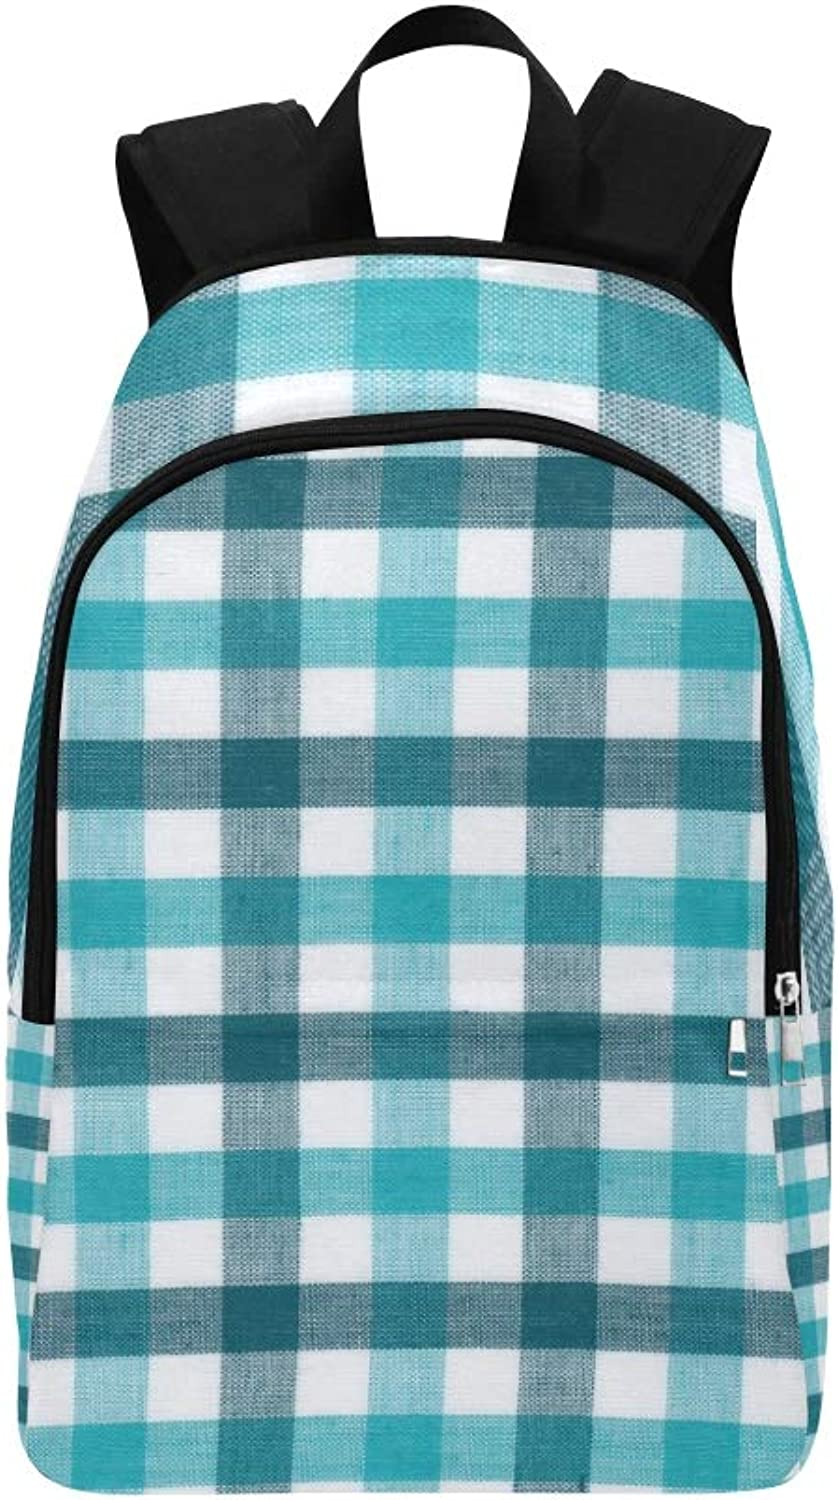 blueee White Tablecloth Casual Daypack Travel Bag College School Backpack for Mens and Women